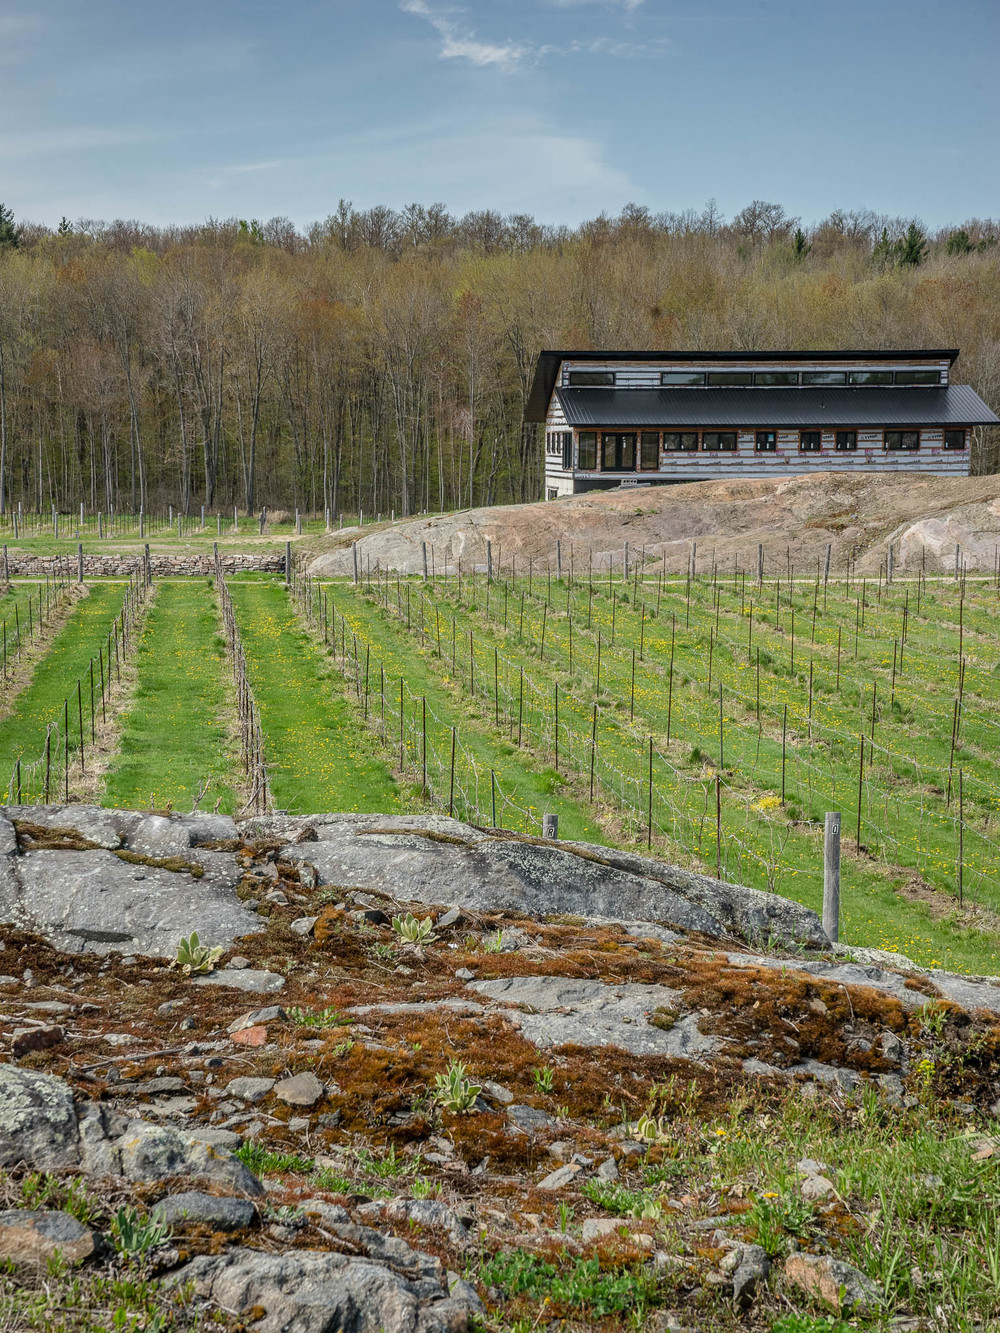 Many varietals were tried before finding the right grapes to thrive at Hastings County's first winery, which is currently open to to the public for tours, wine tastings, and purchases.  Photo by Gail Burstyn